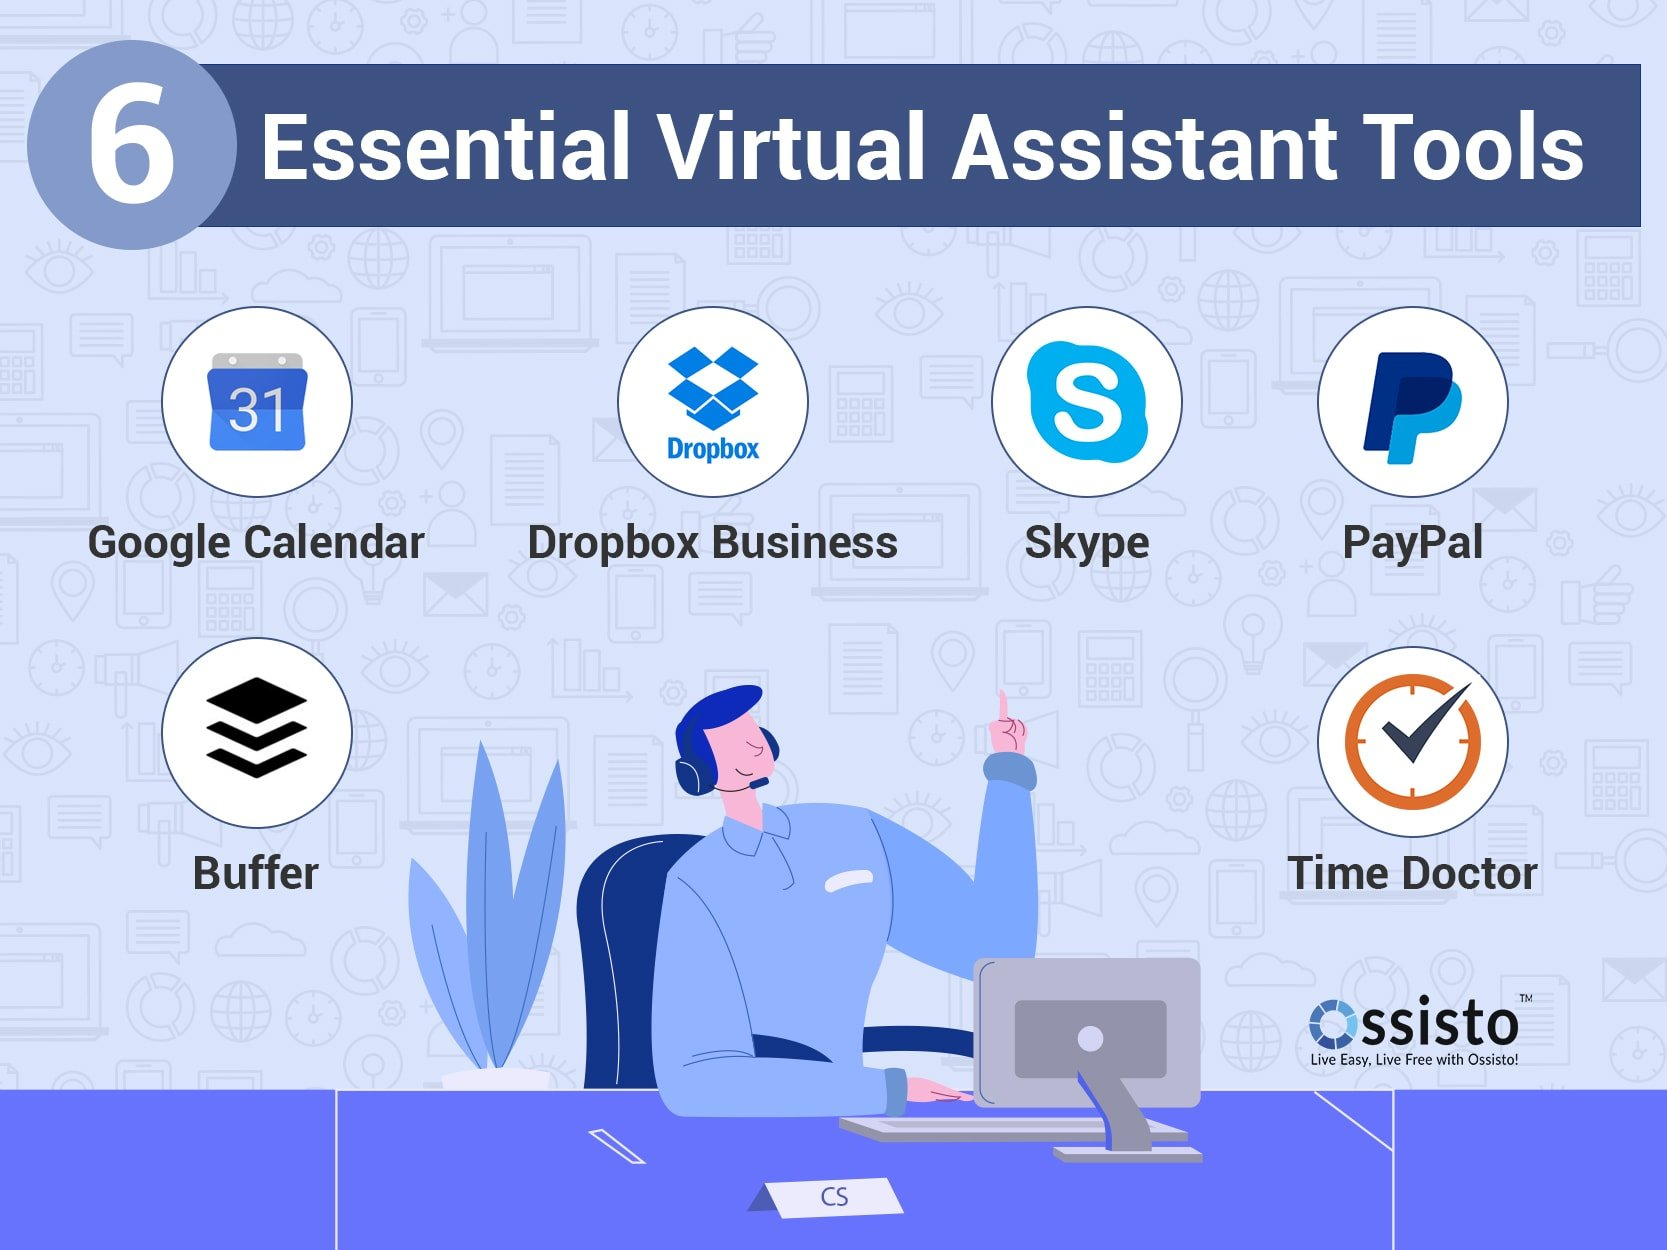 ESSENTIAL VIRTUAL ASSISTANT TOOLS